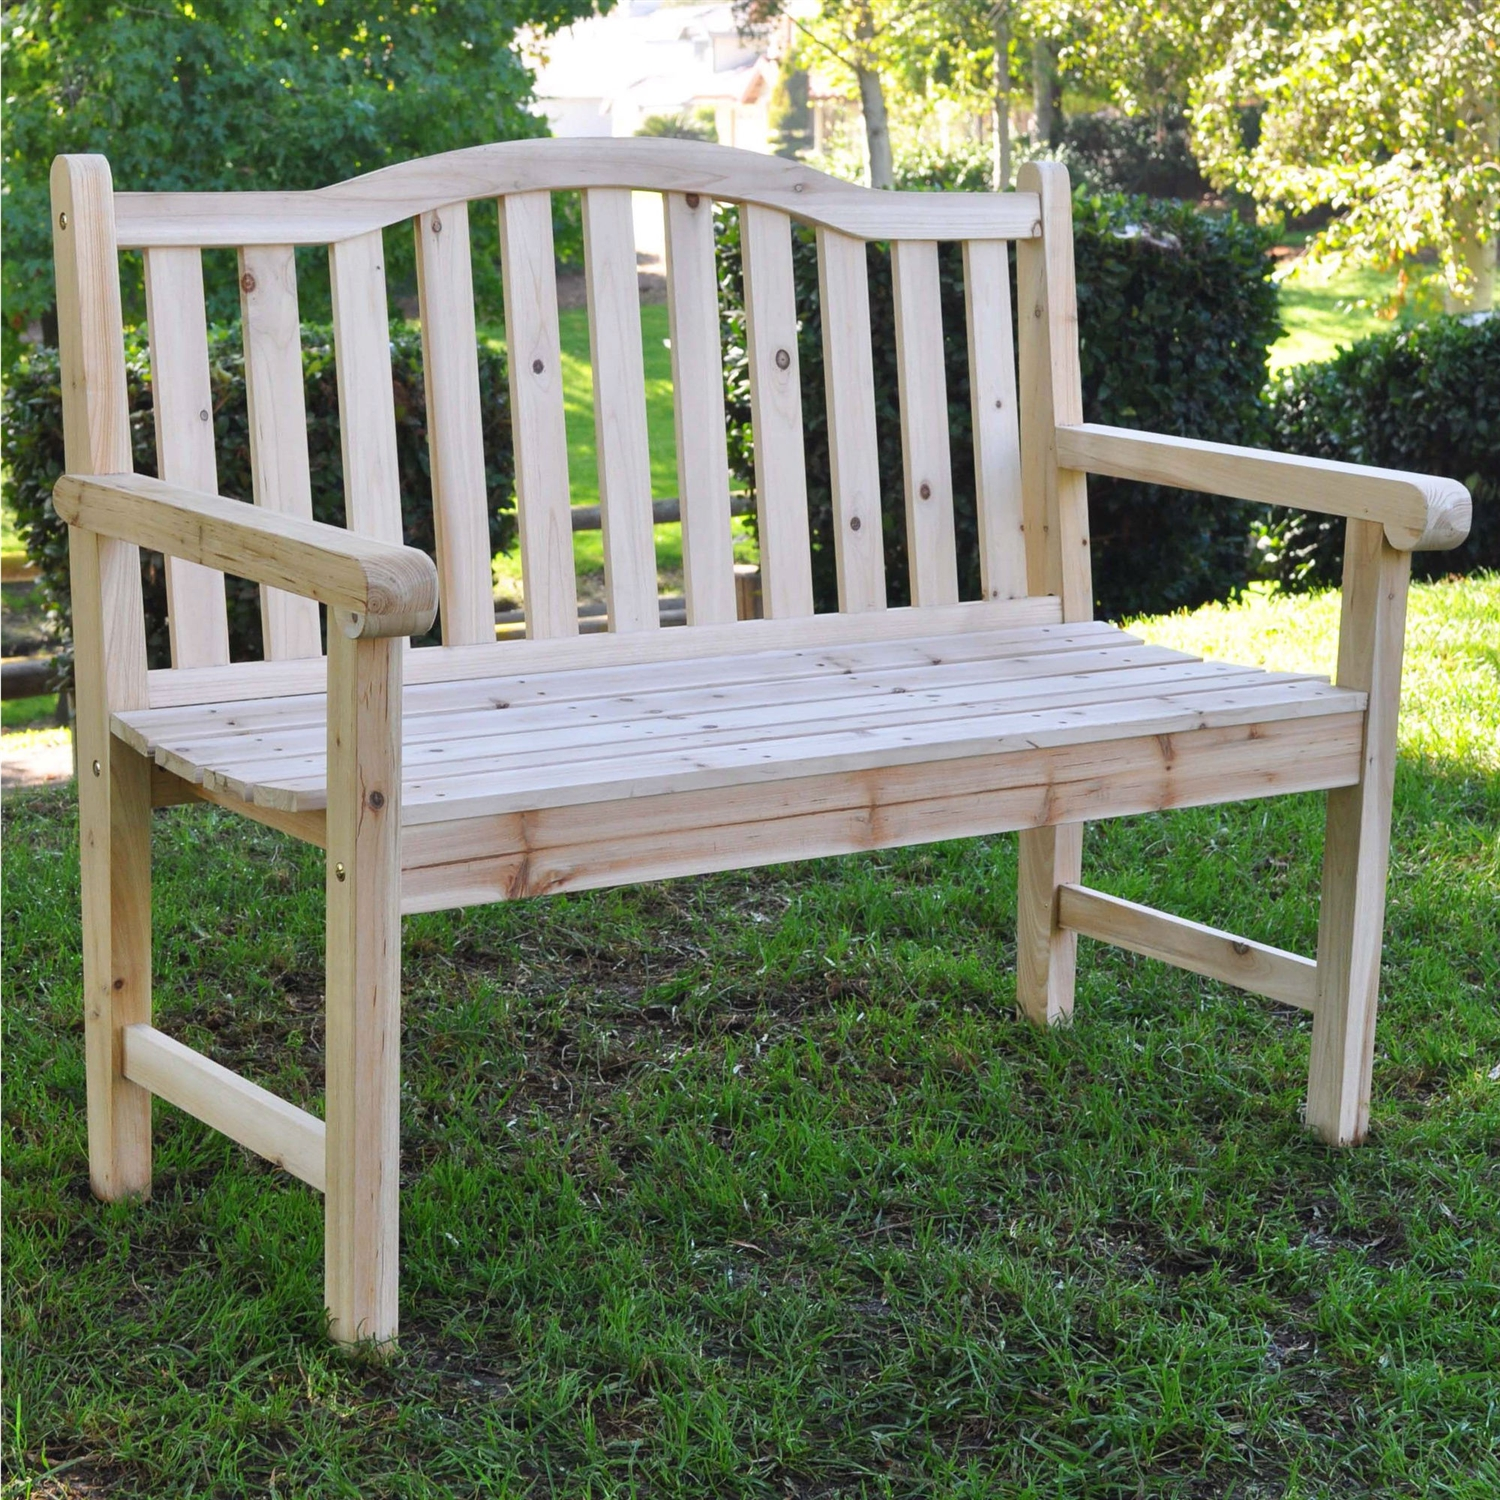 Outdoor Cedar Wood Garden Bench In Natural With 475lbs Weight Limit Fastfurnishings Com